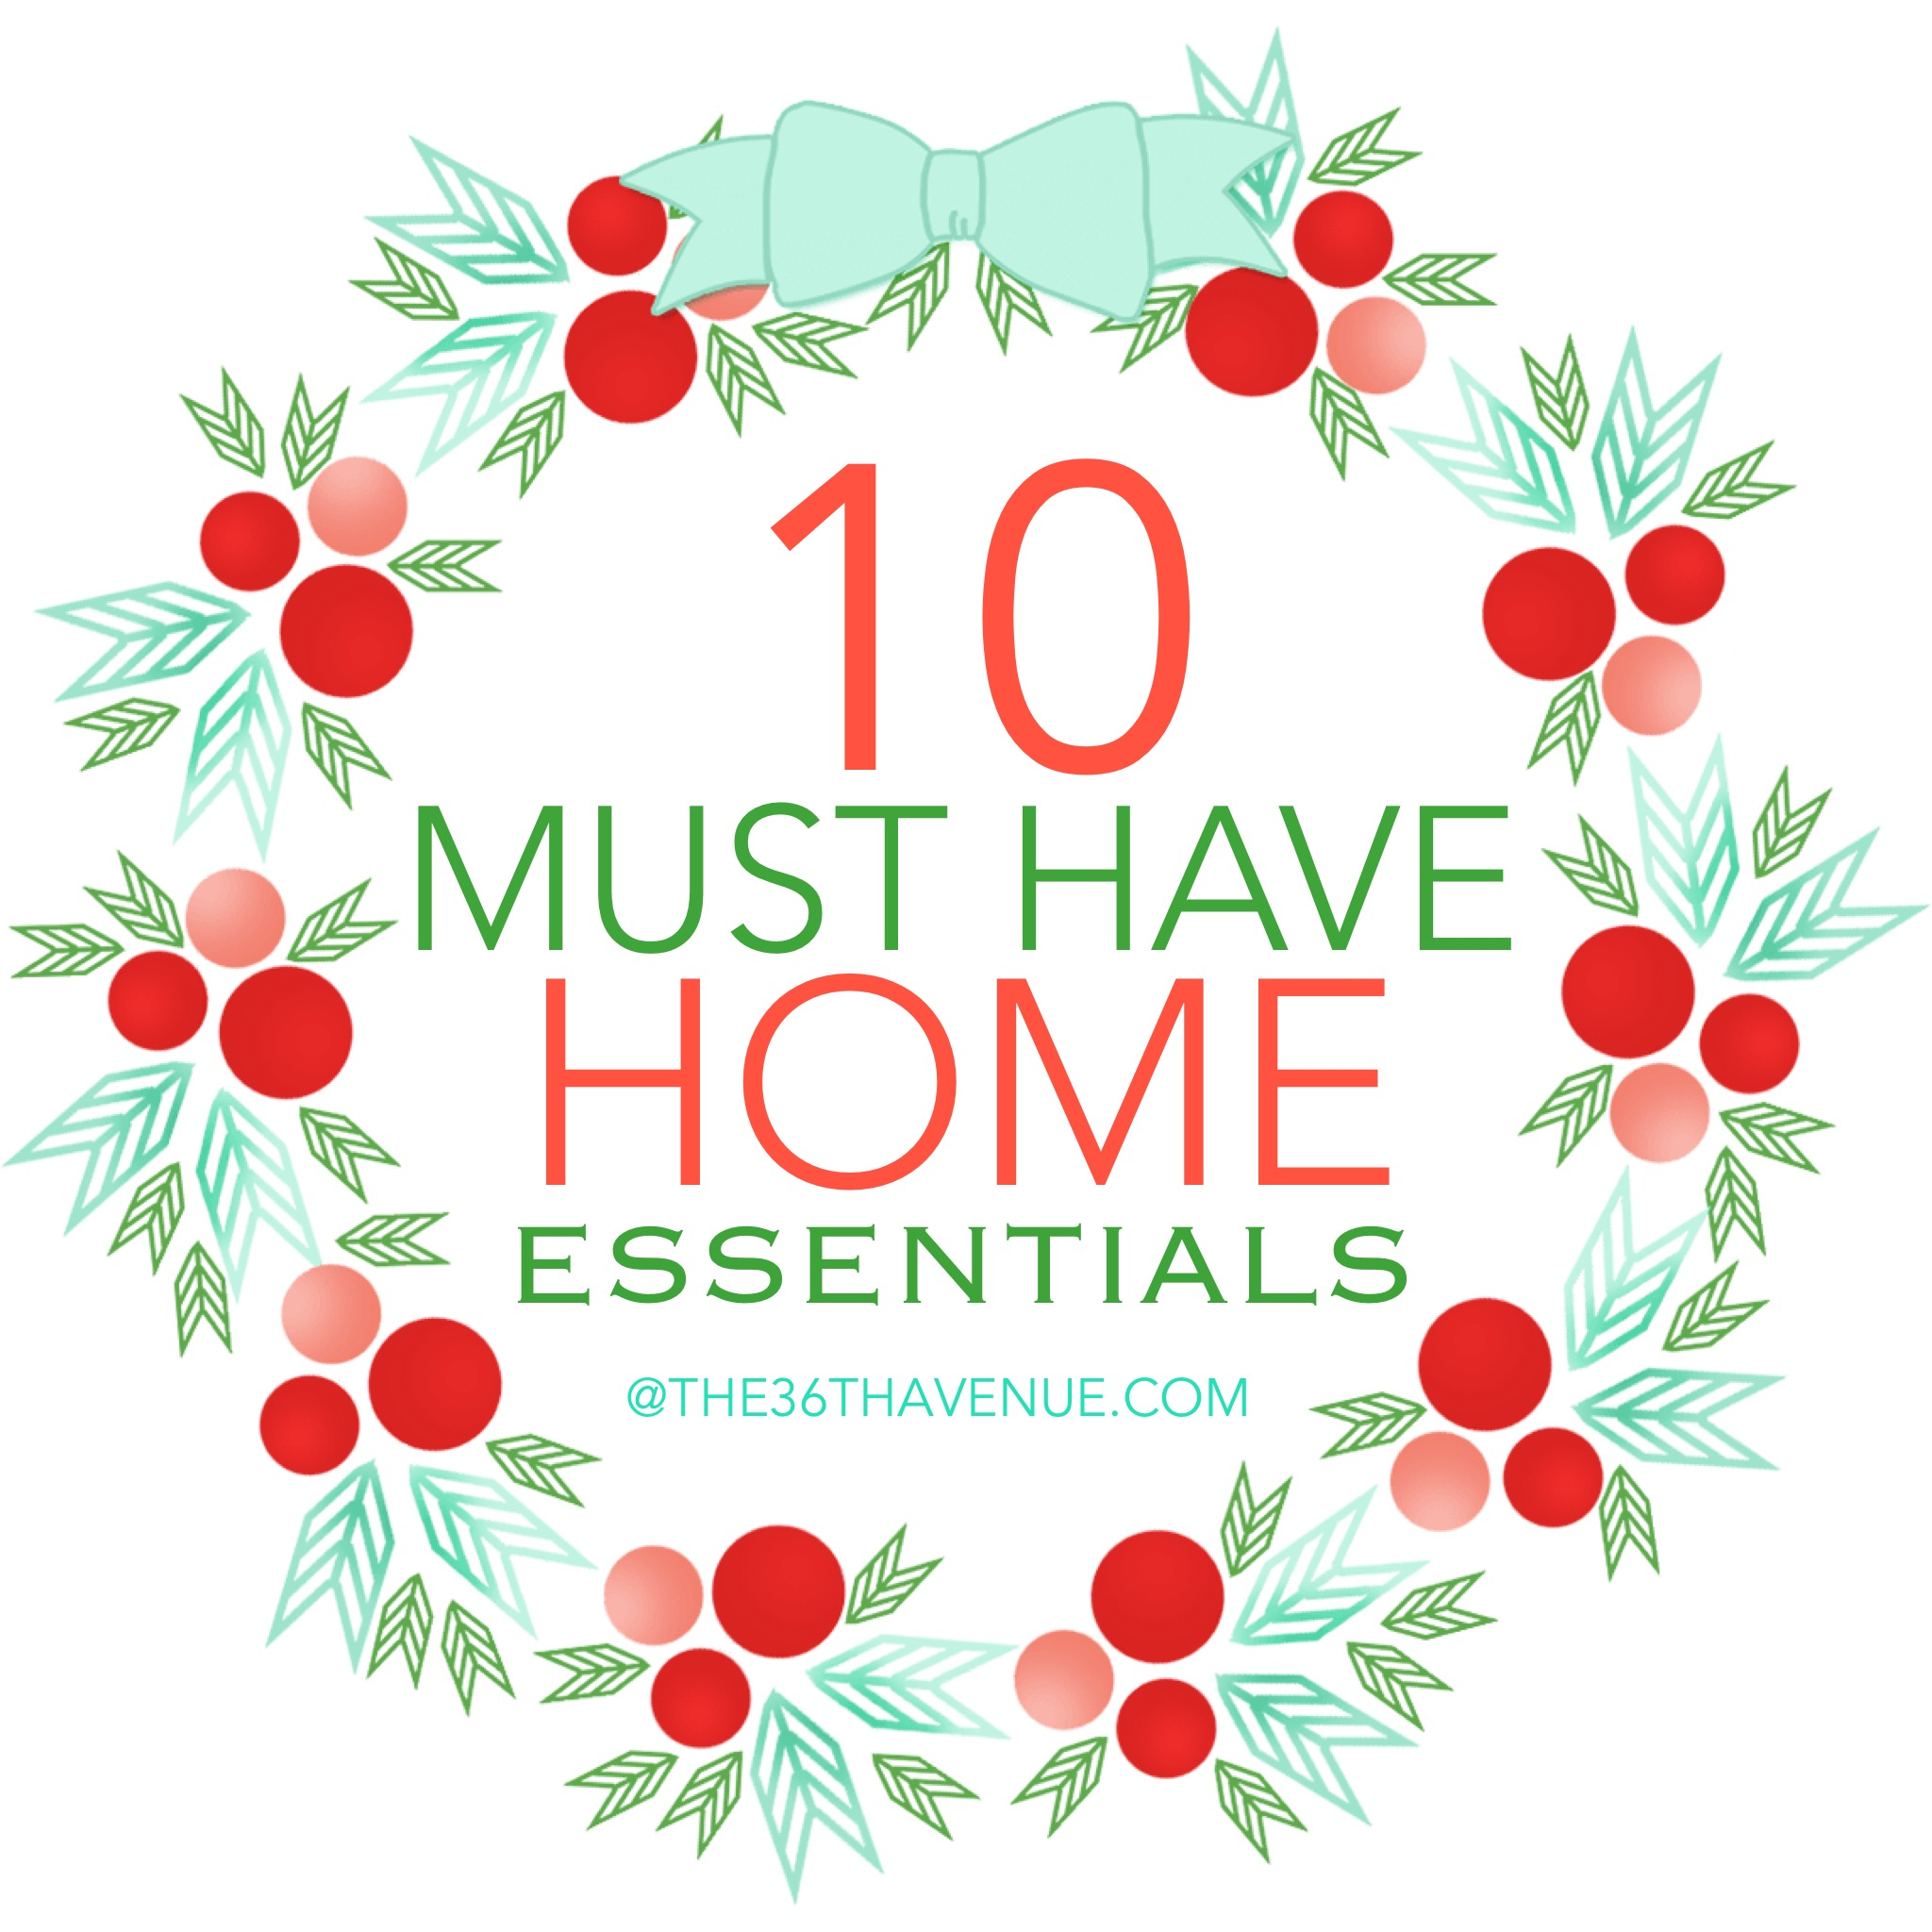 10 Must Have Home Gadgets. Home essentials for your kitchen, living room, bedroom, and more!